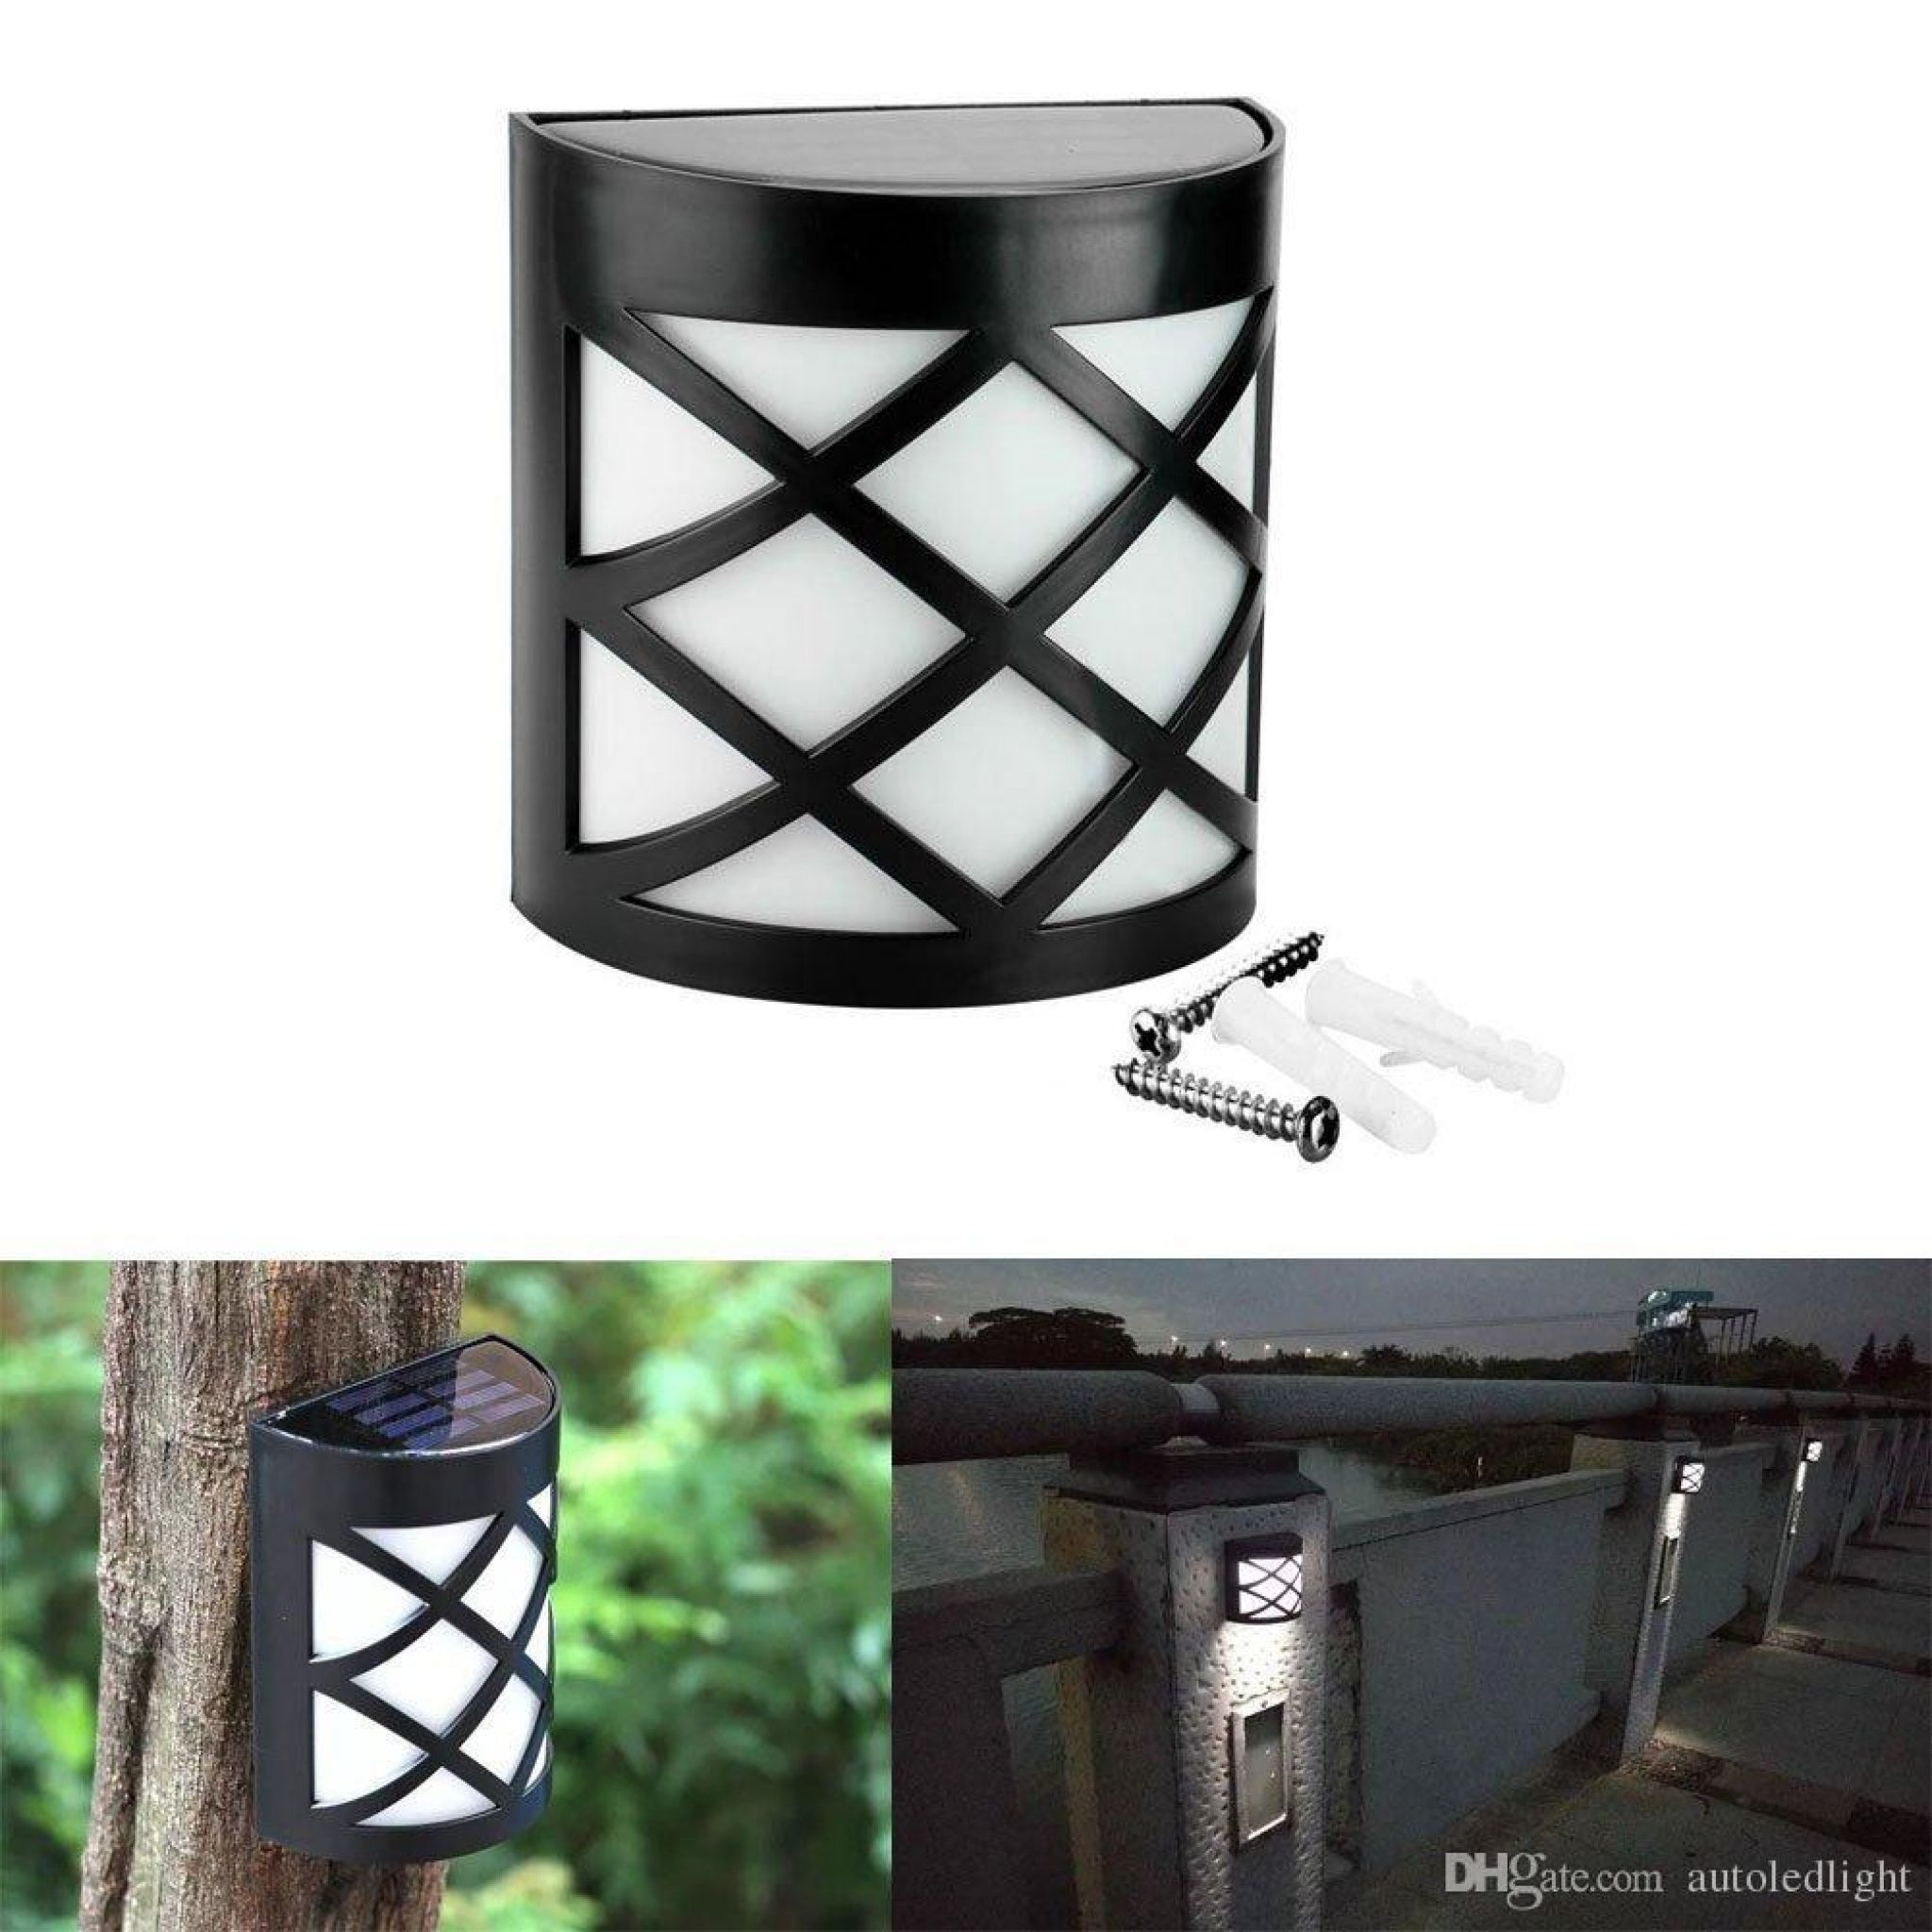 Outdoor Solar Lights Lowes Alluring Outdoor Solar Powered Lights  Lowes Paint Colors Interior Check Inspiration Design